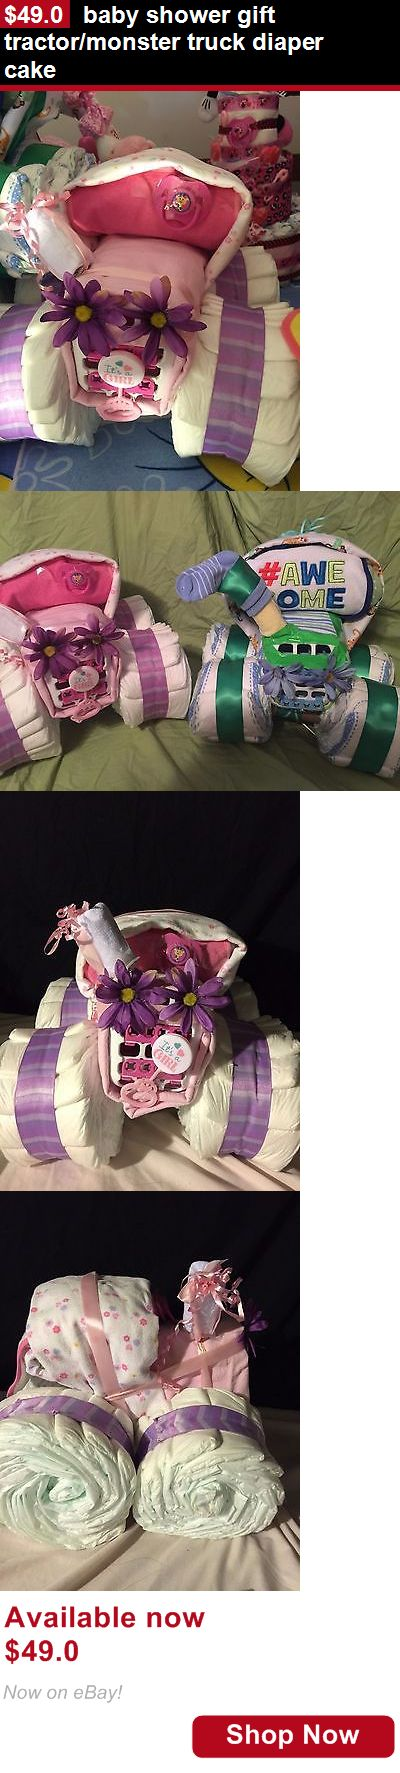 Baby Diaper Cakes: Baby Shower Gift Tractor/Monster Truck Diaper Cake BUY IT NOW ONLY: $49.0